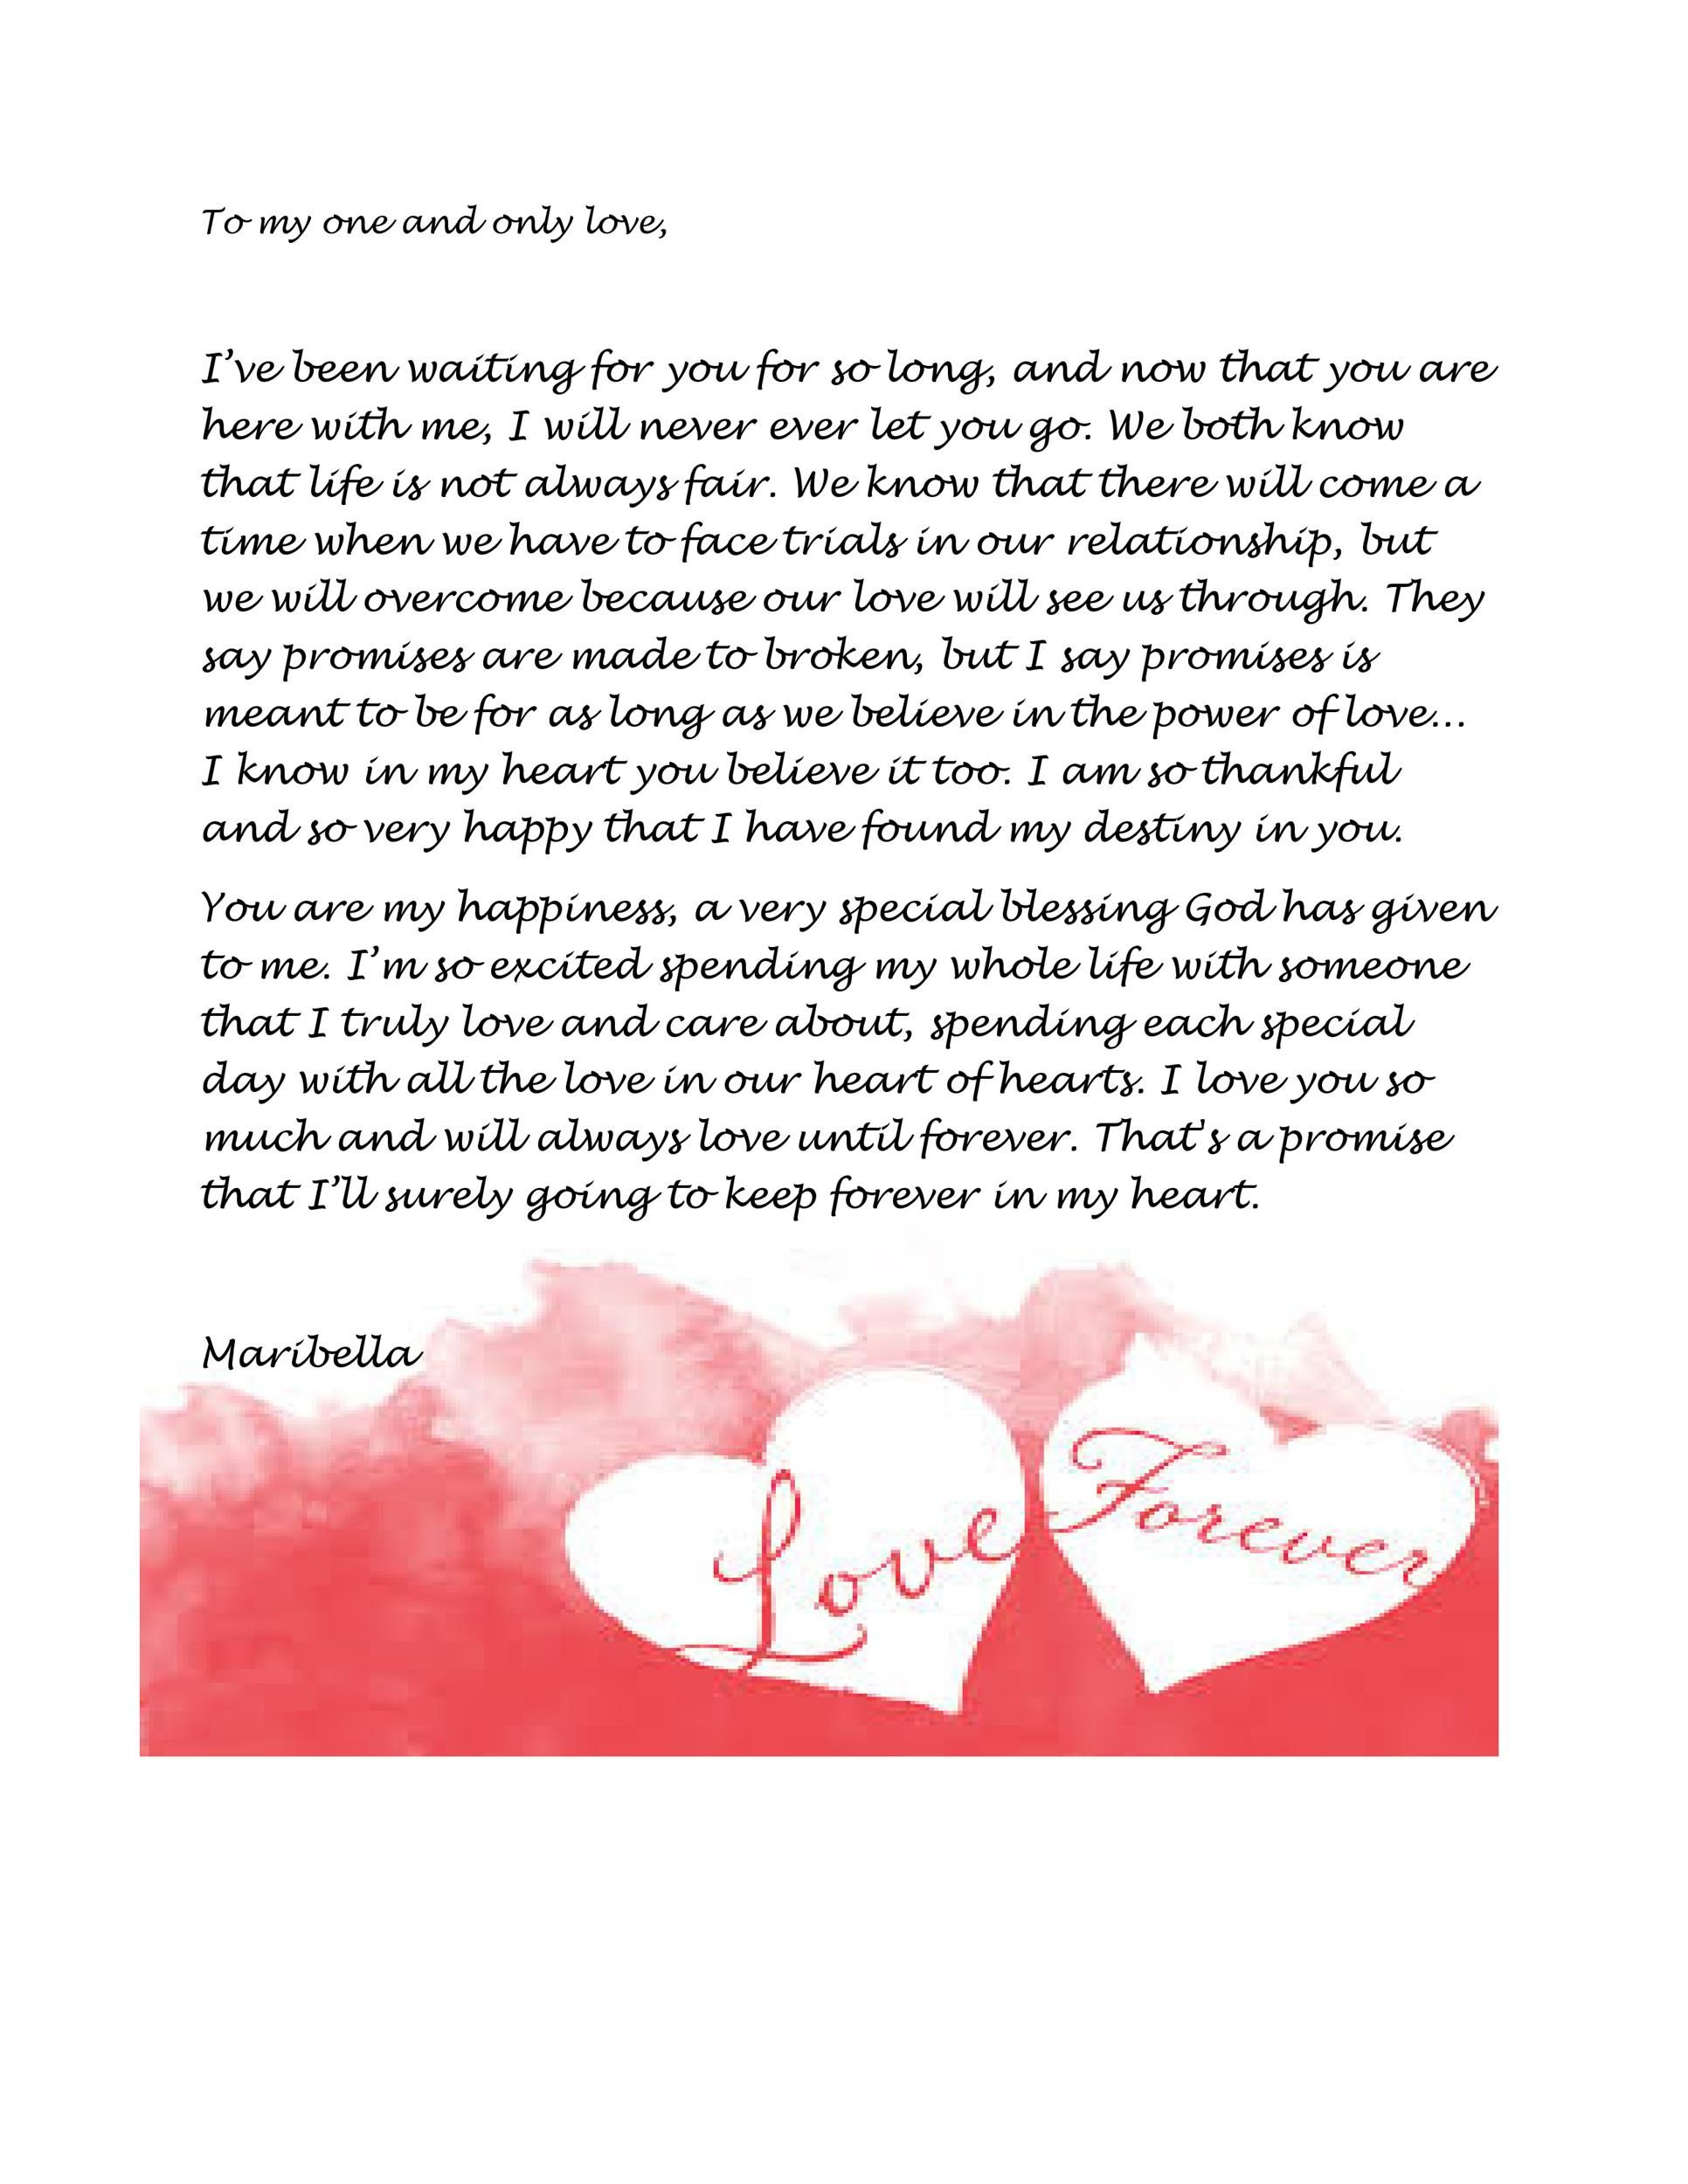 45 Romantic Love Letters For Her For Him Romantic Love Letters Sweet Love Letters Love Letter To Girlfriend